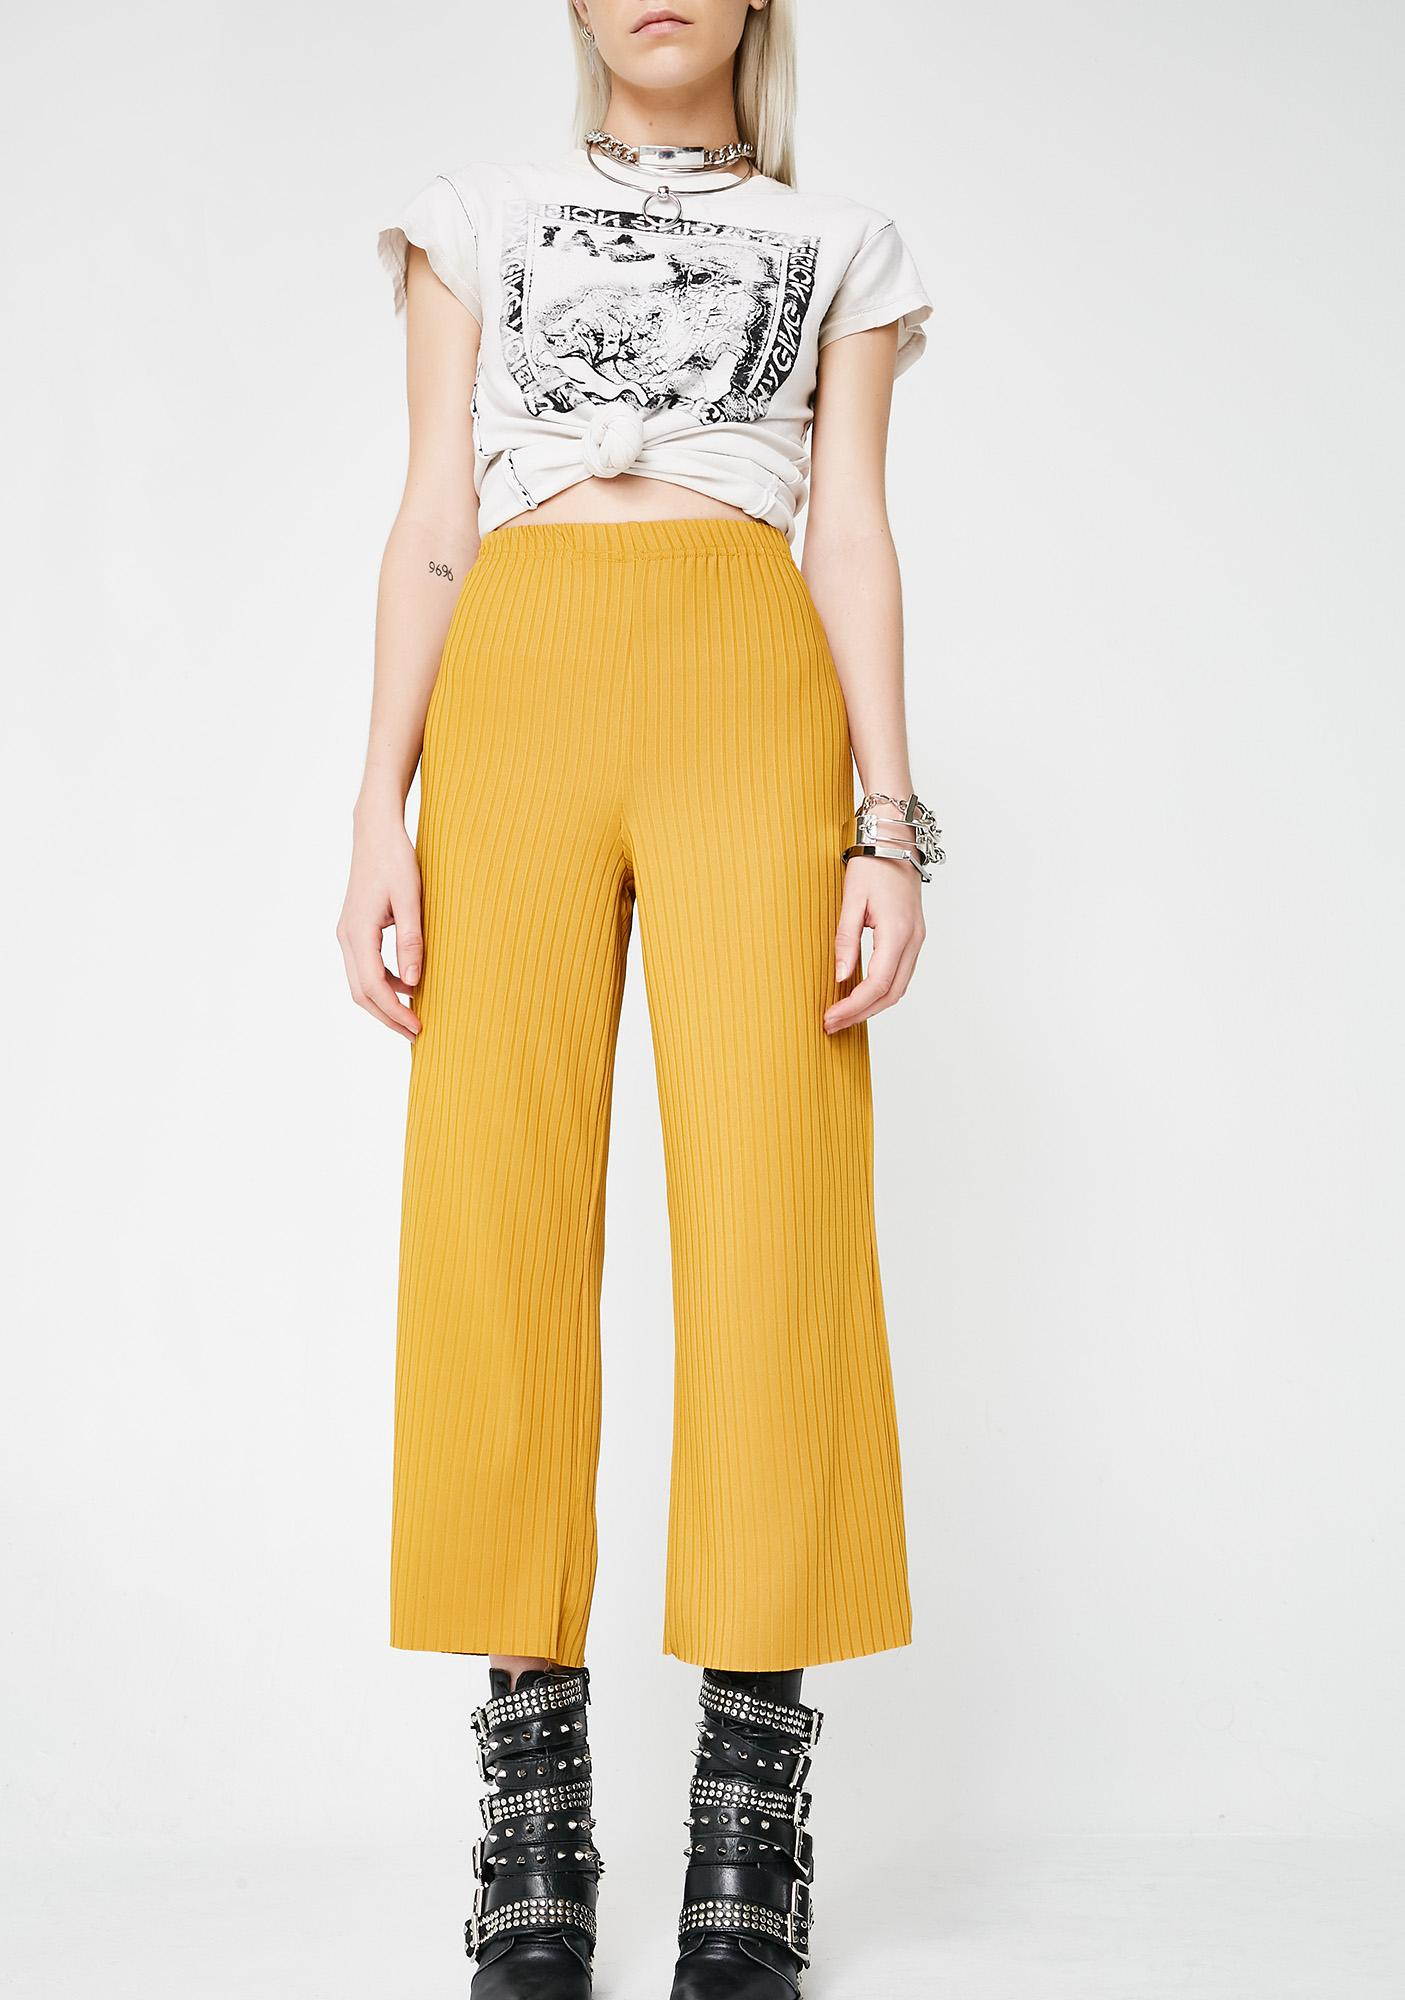 Lira Clothing Jefferson Pants